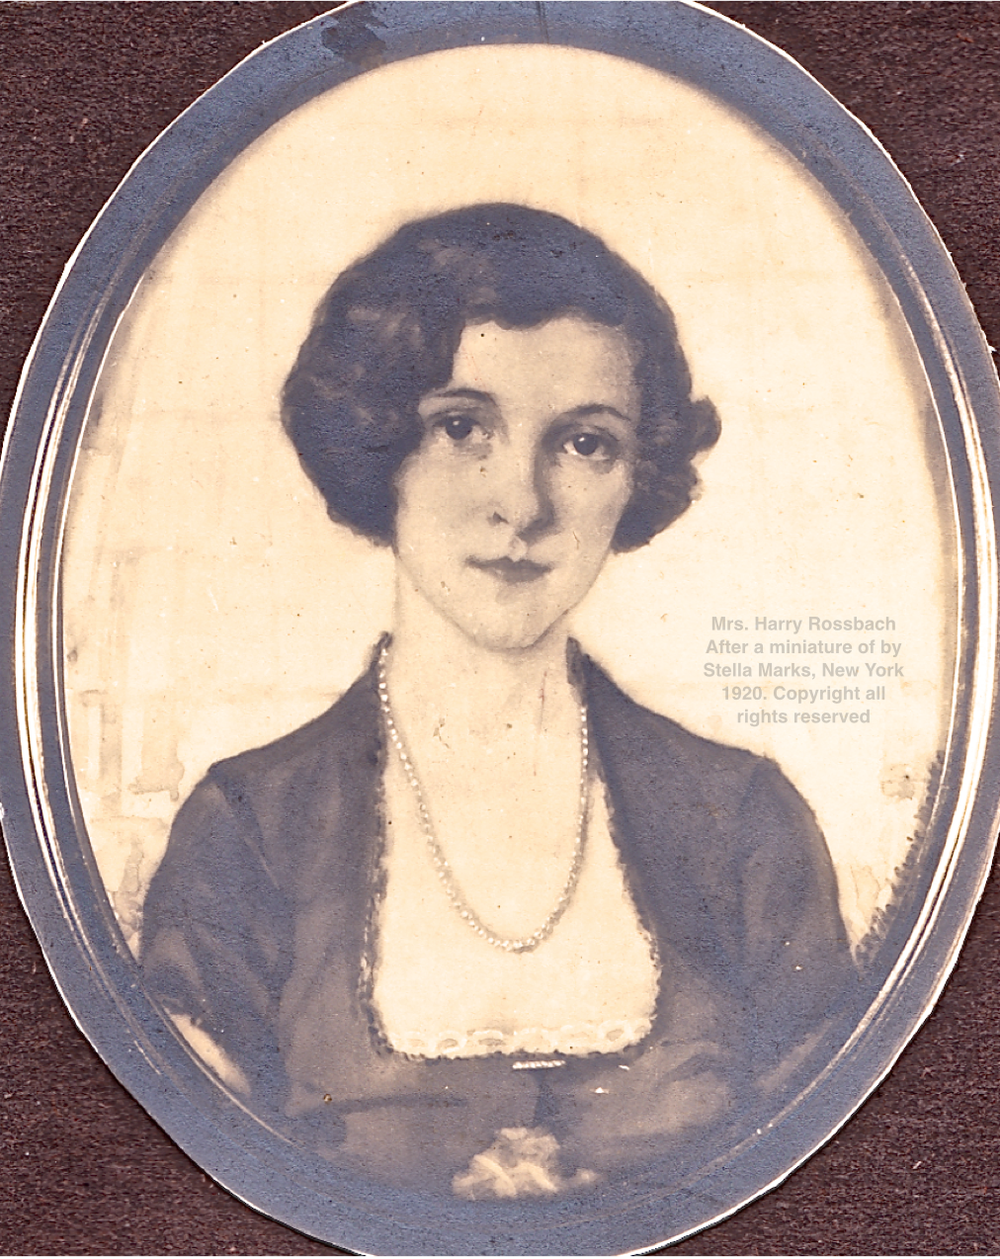 Mrs. Harry Rossbach (later Sophie Gimbel) After a miniature of by Stella Marks, New York 1920. Copyright Stella Marks' Estate all rights reserved